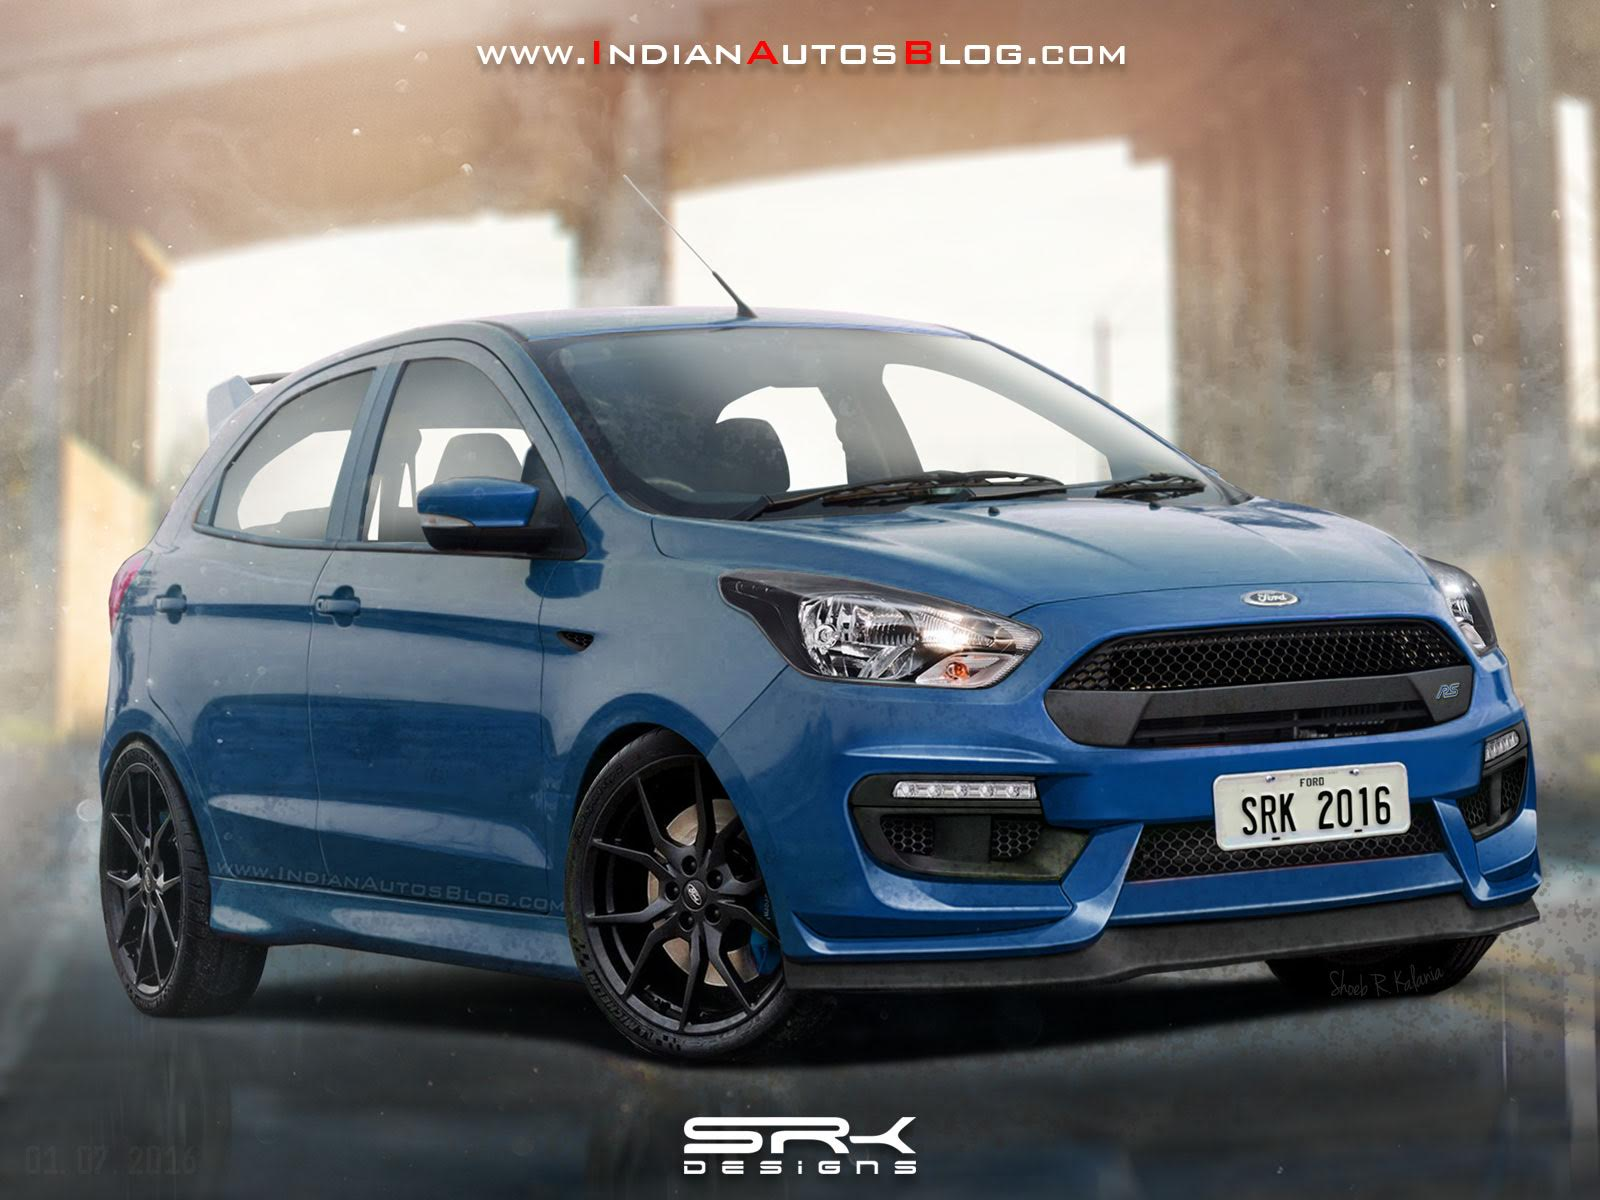 Ford Figo RS front Rendering